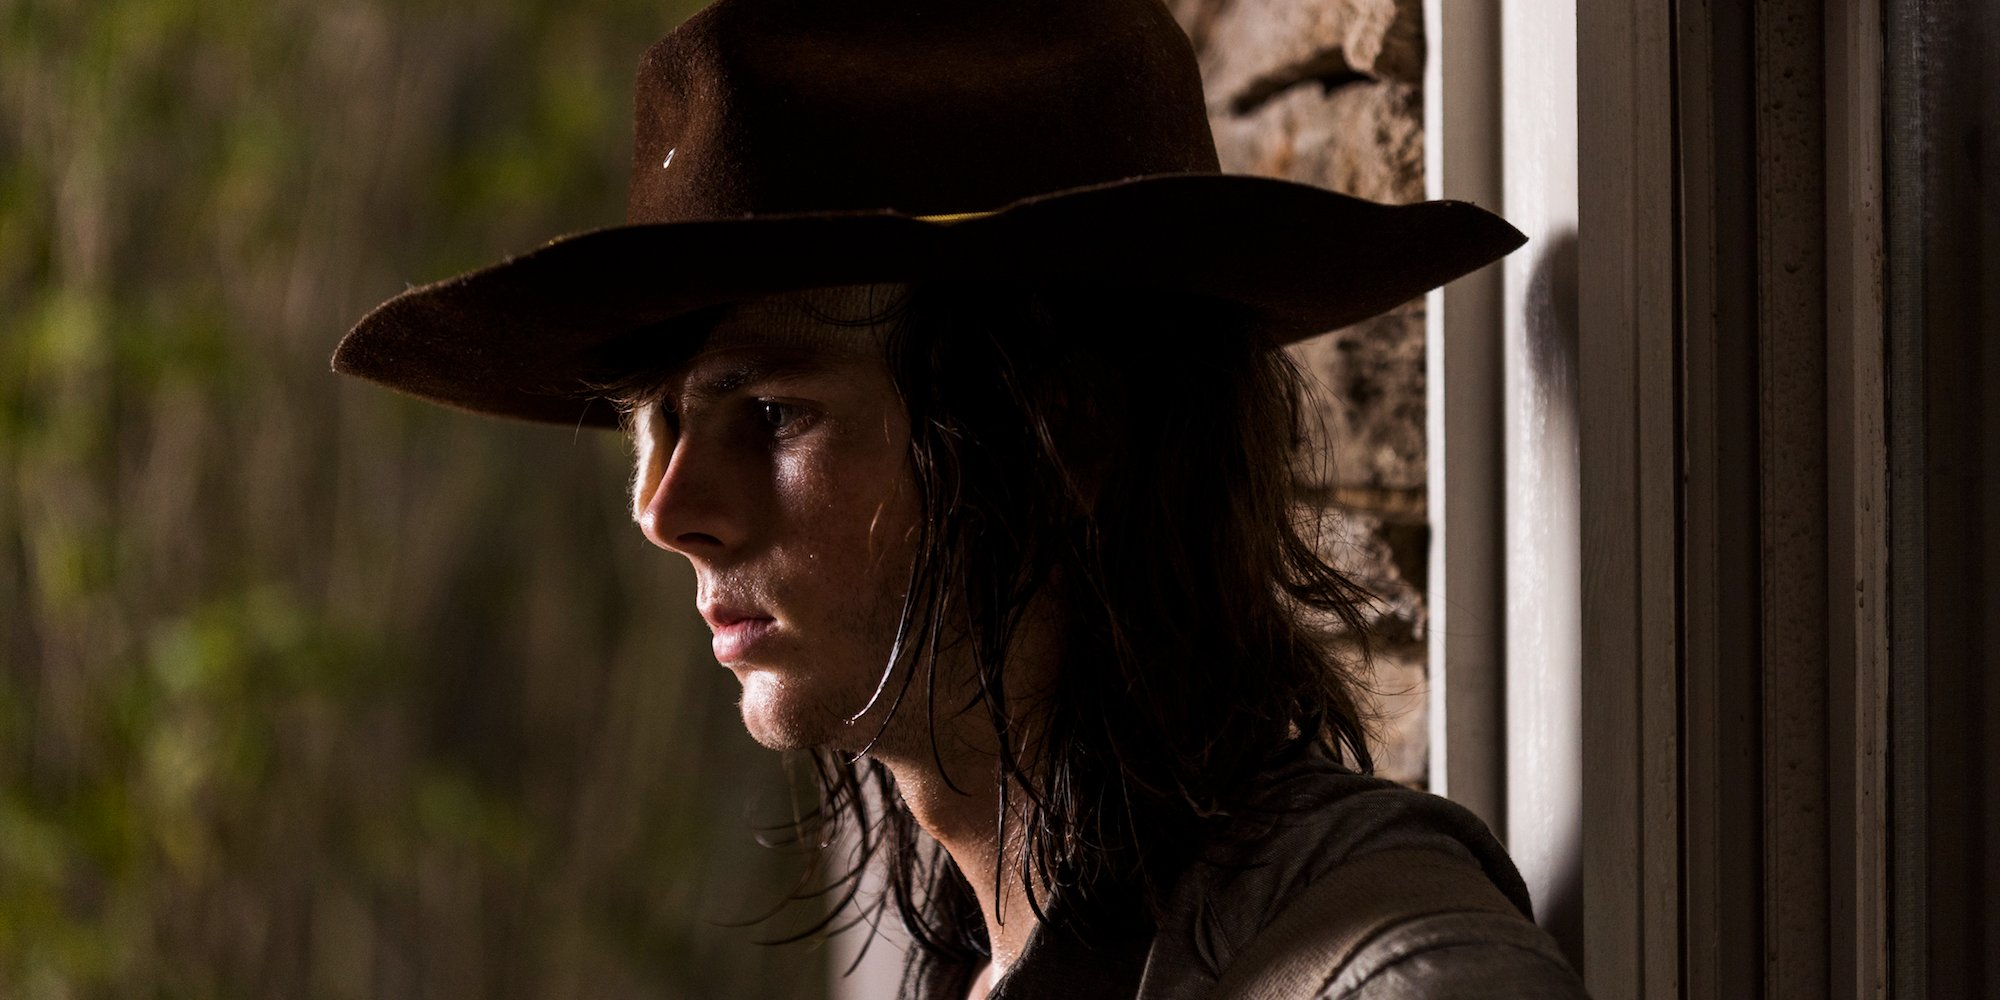 Chandler Riggs as Carl Grimes in The Walking Dead